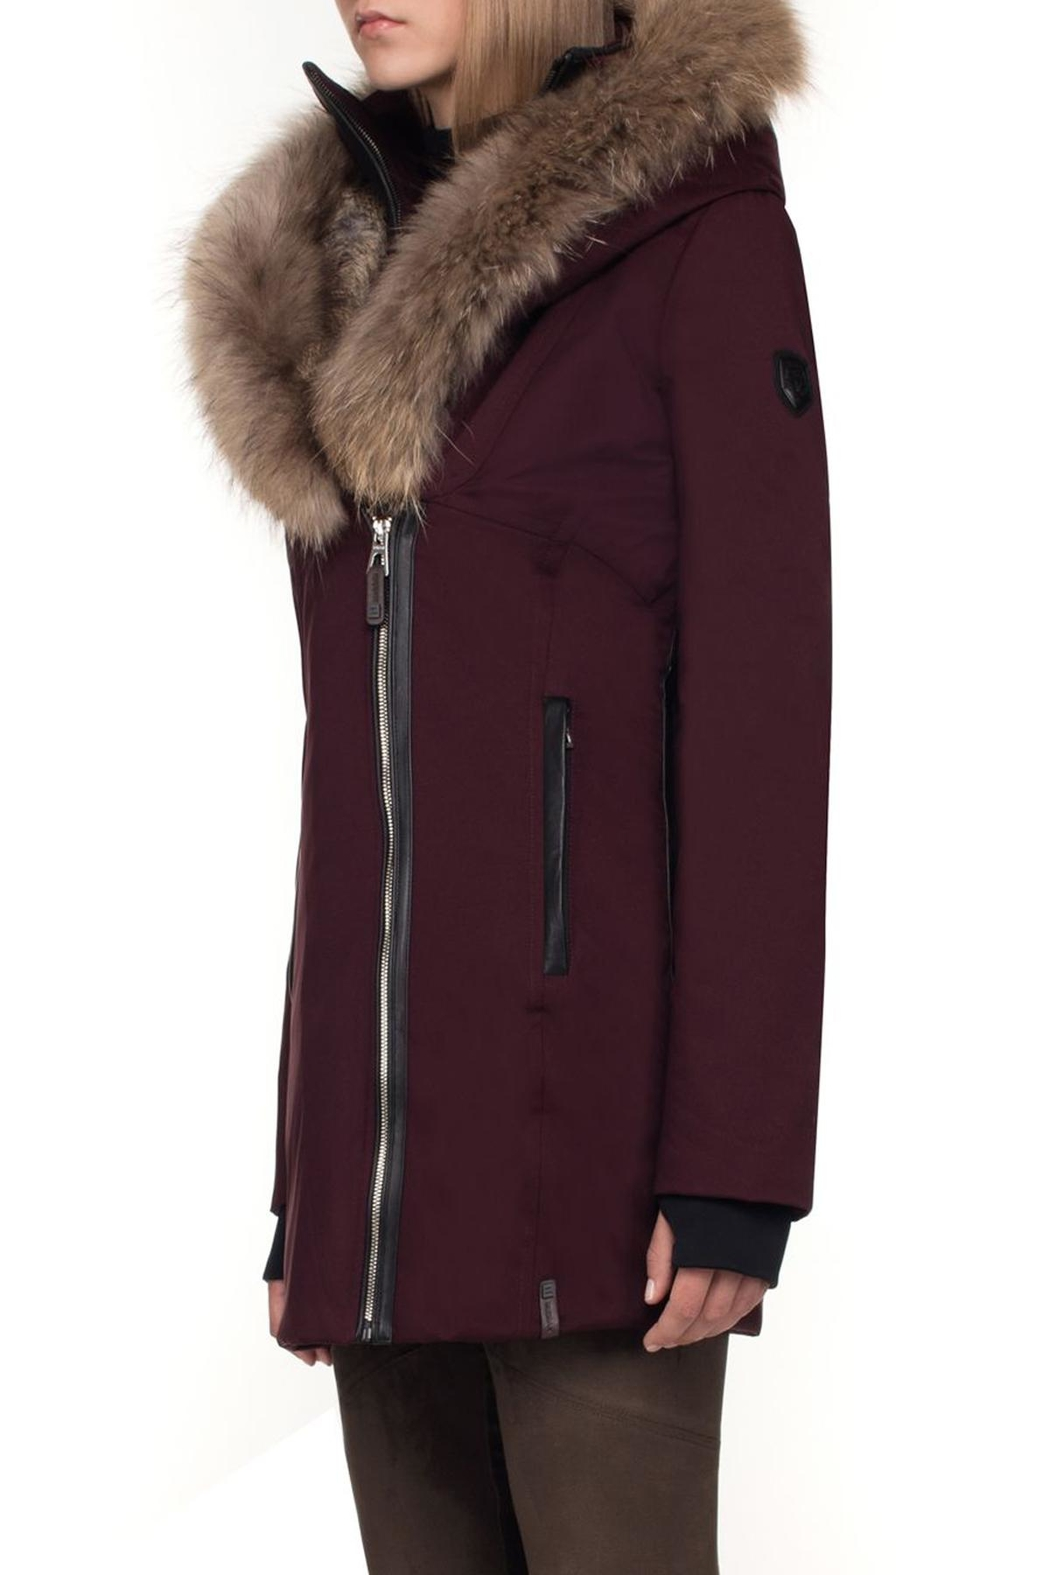 Rudsak Toronto Down Jacket From Ontario By I N Boutique